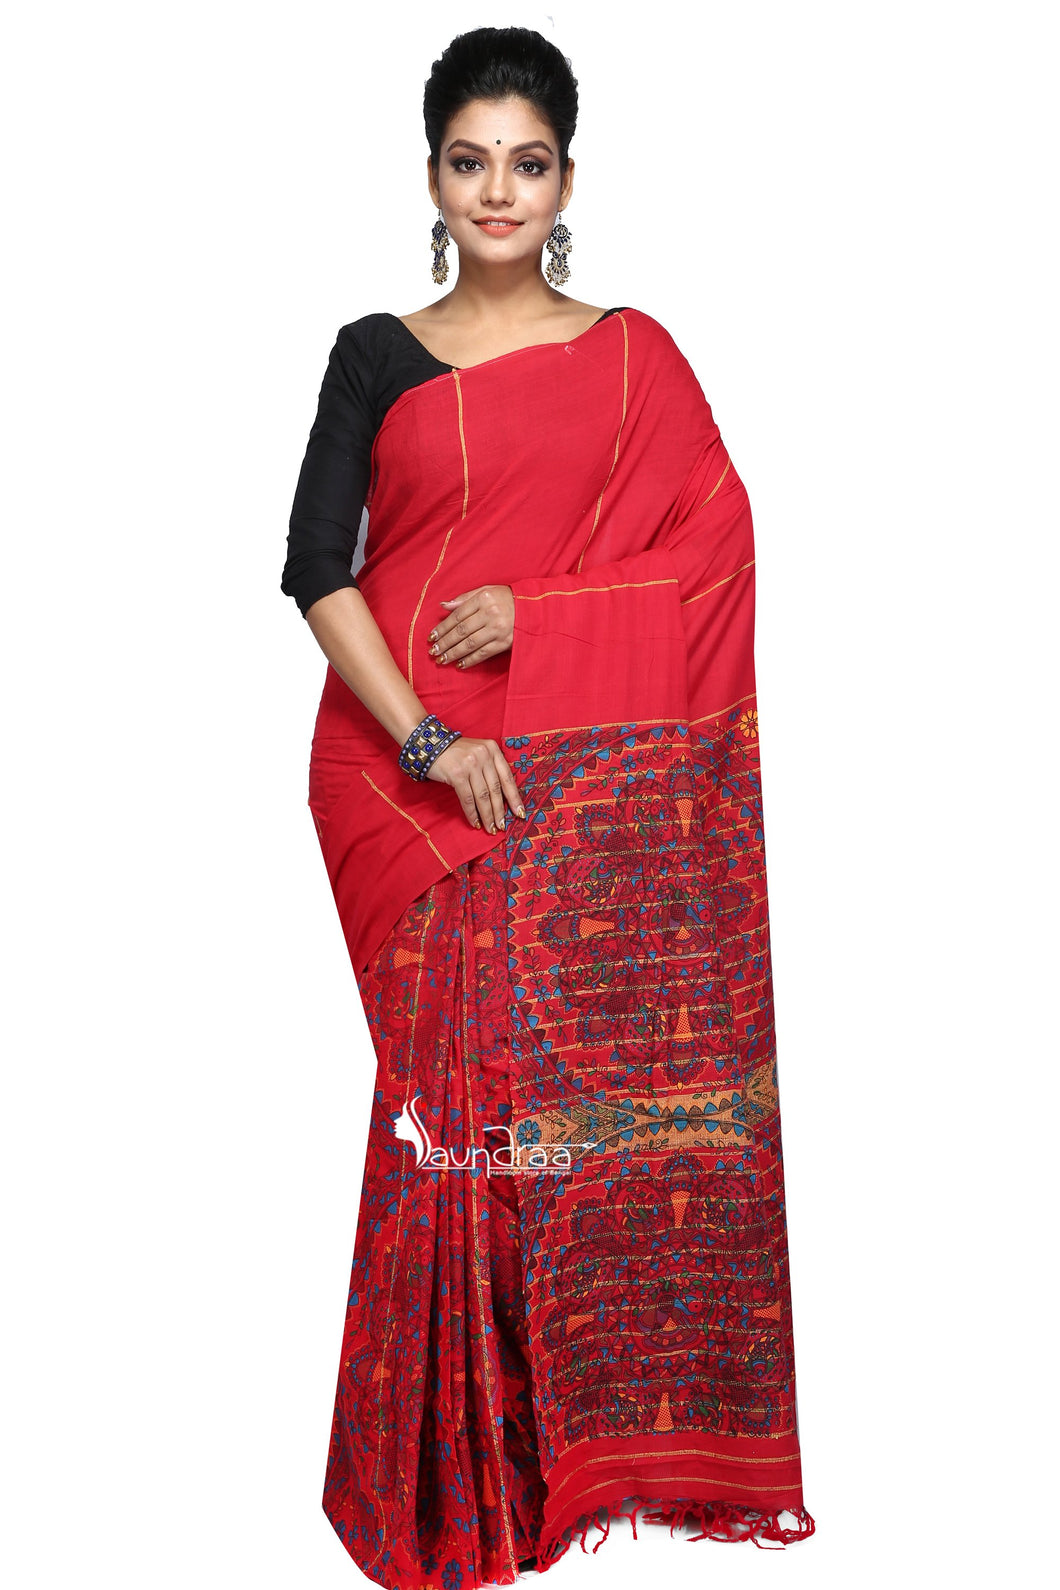 Madhubani Work On Red Cotton Khesh Saree - Saree